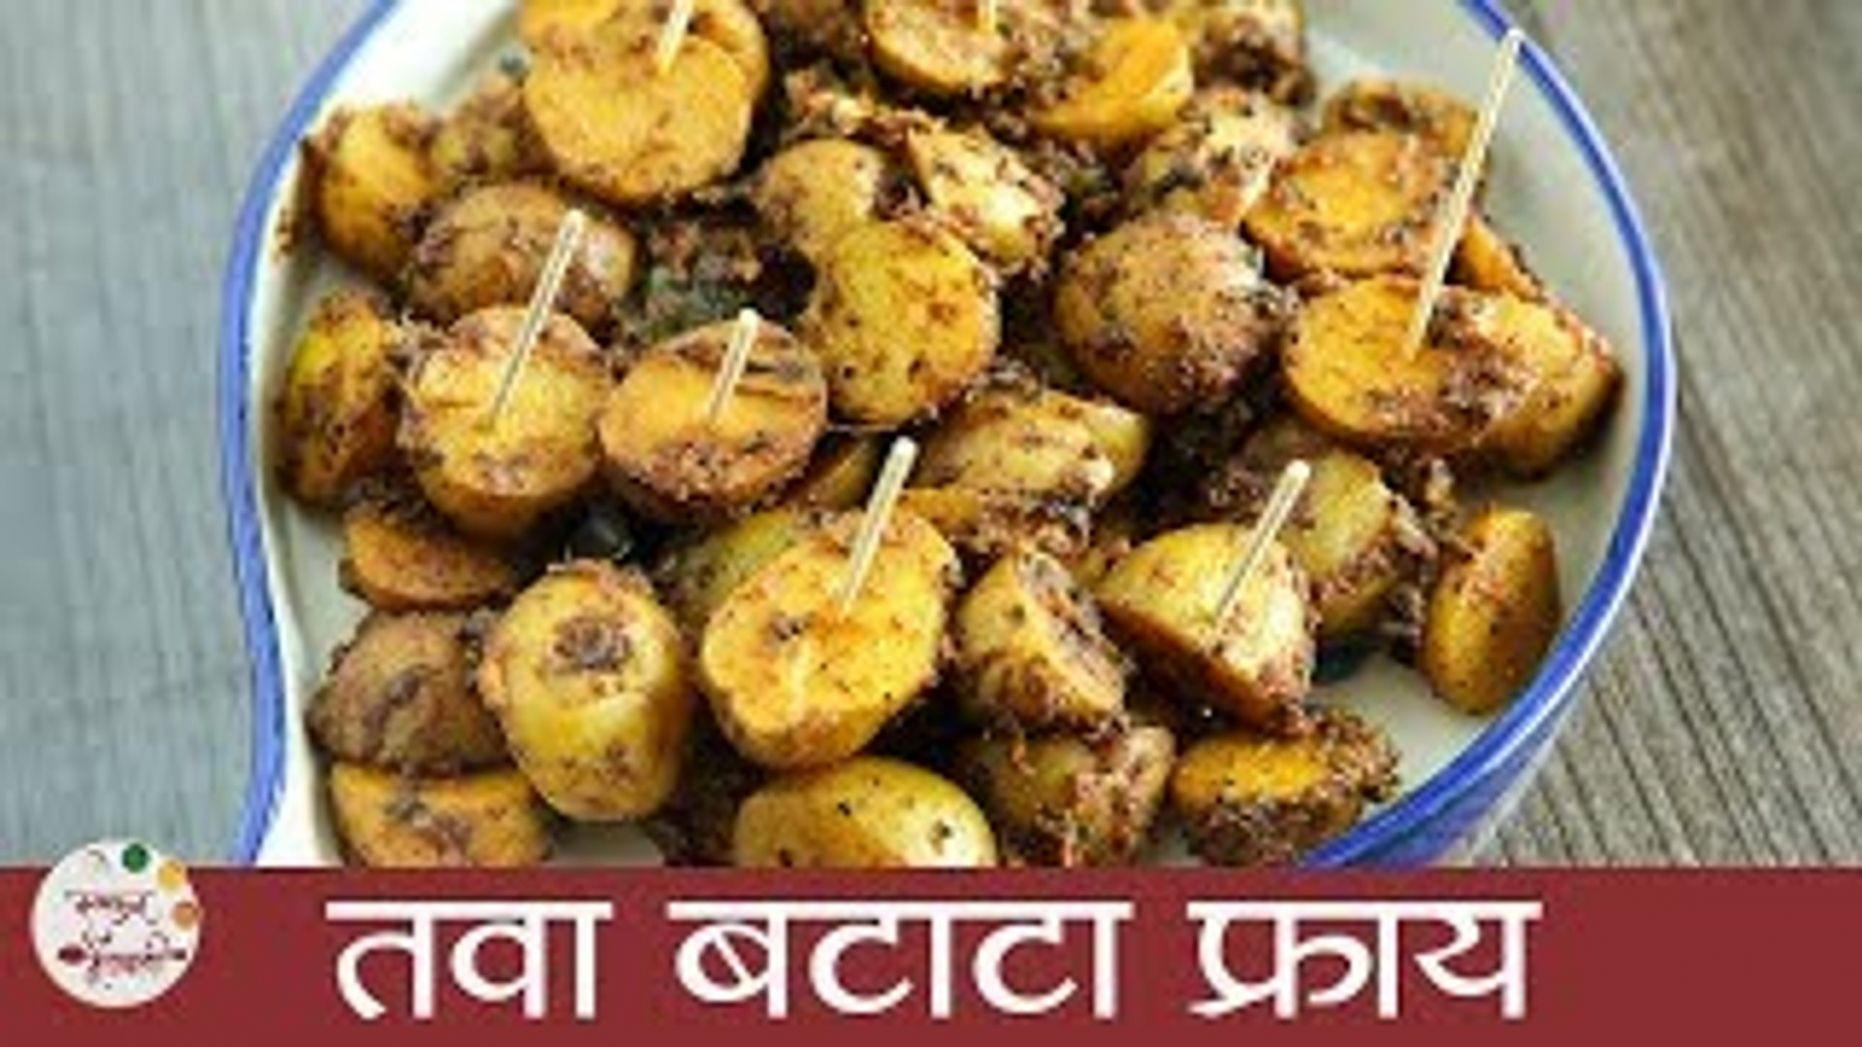 Tawa Aloo Fry | तवा बटाटा फ्राय | Tawa Aloo Fry Recipe in Marathi | Tawa  Batata Fry | Sonali Raut - Potato Recipes In Marathi